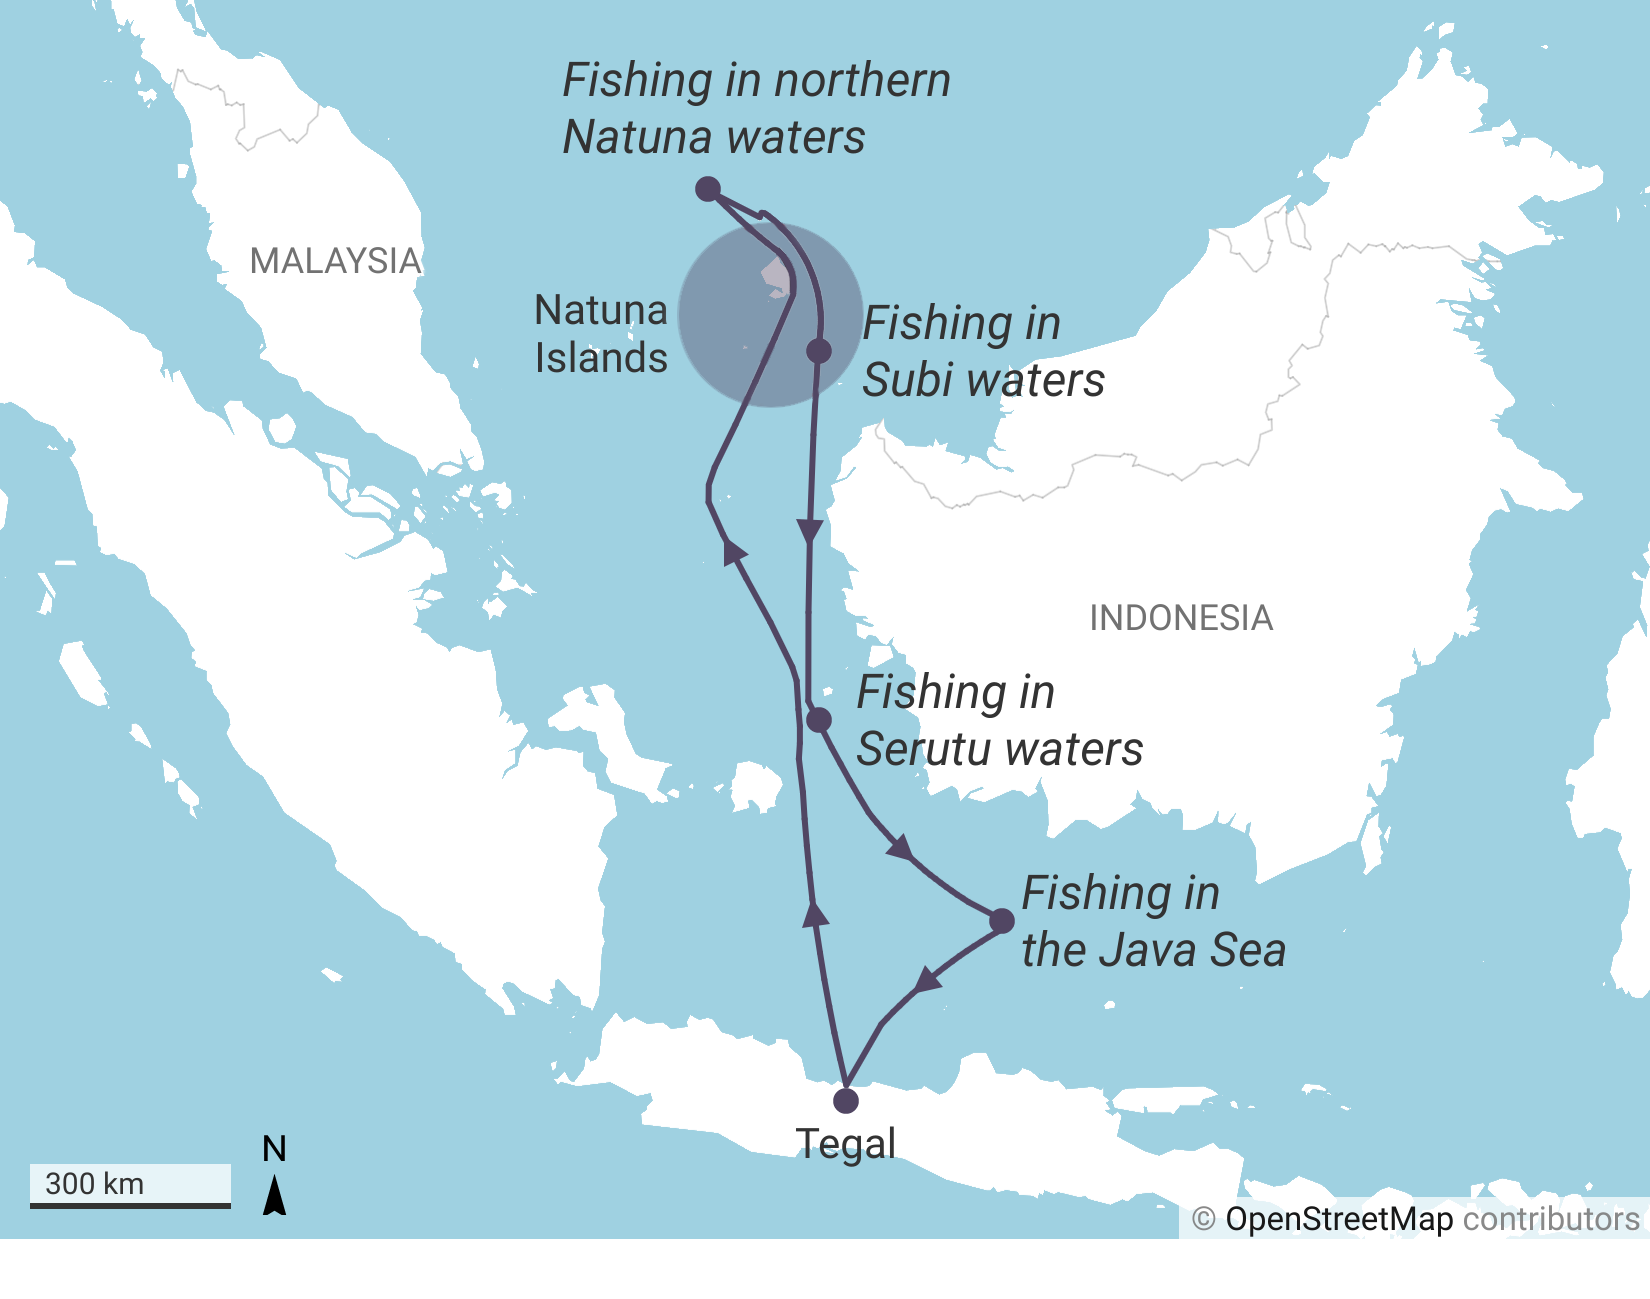 A route taken by one of the 30 fishing vessels that traveled from Tegal to the Natuna islands. The trip to travel northwards took them approx. five days at sea, they fished in the disputed waters for one month before traveling back to Tegal.